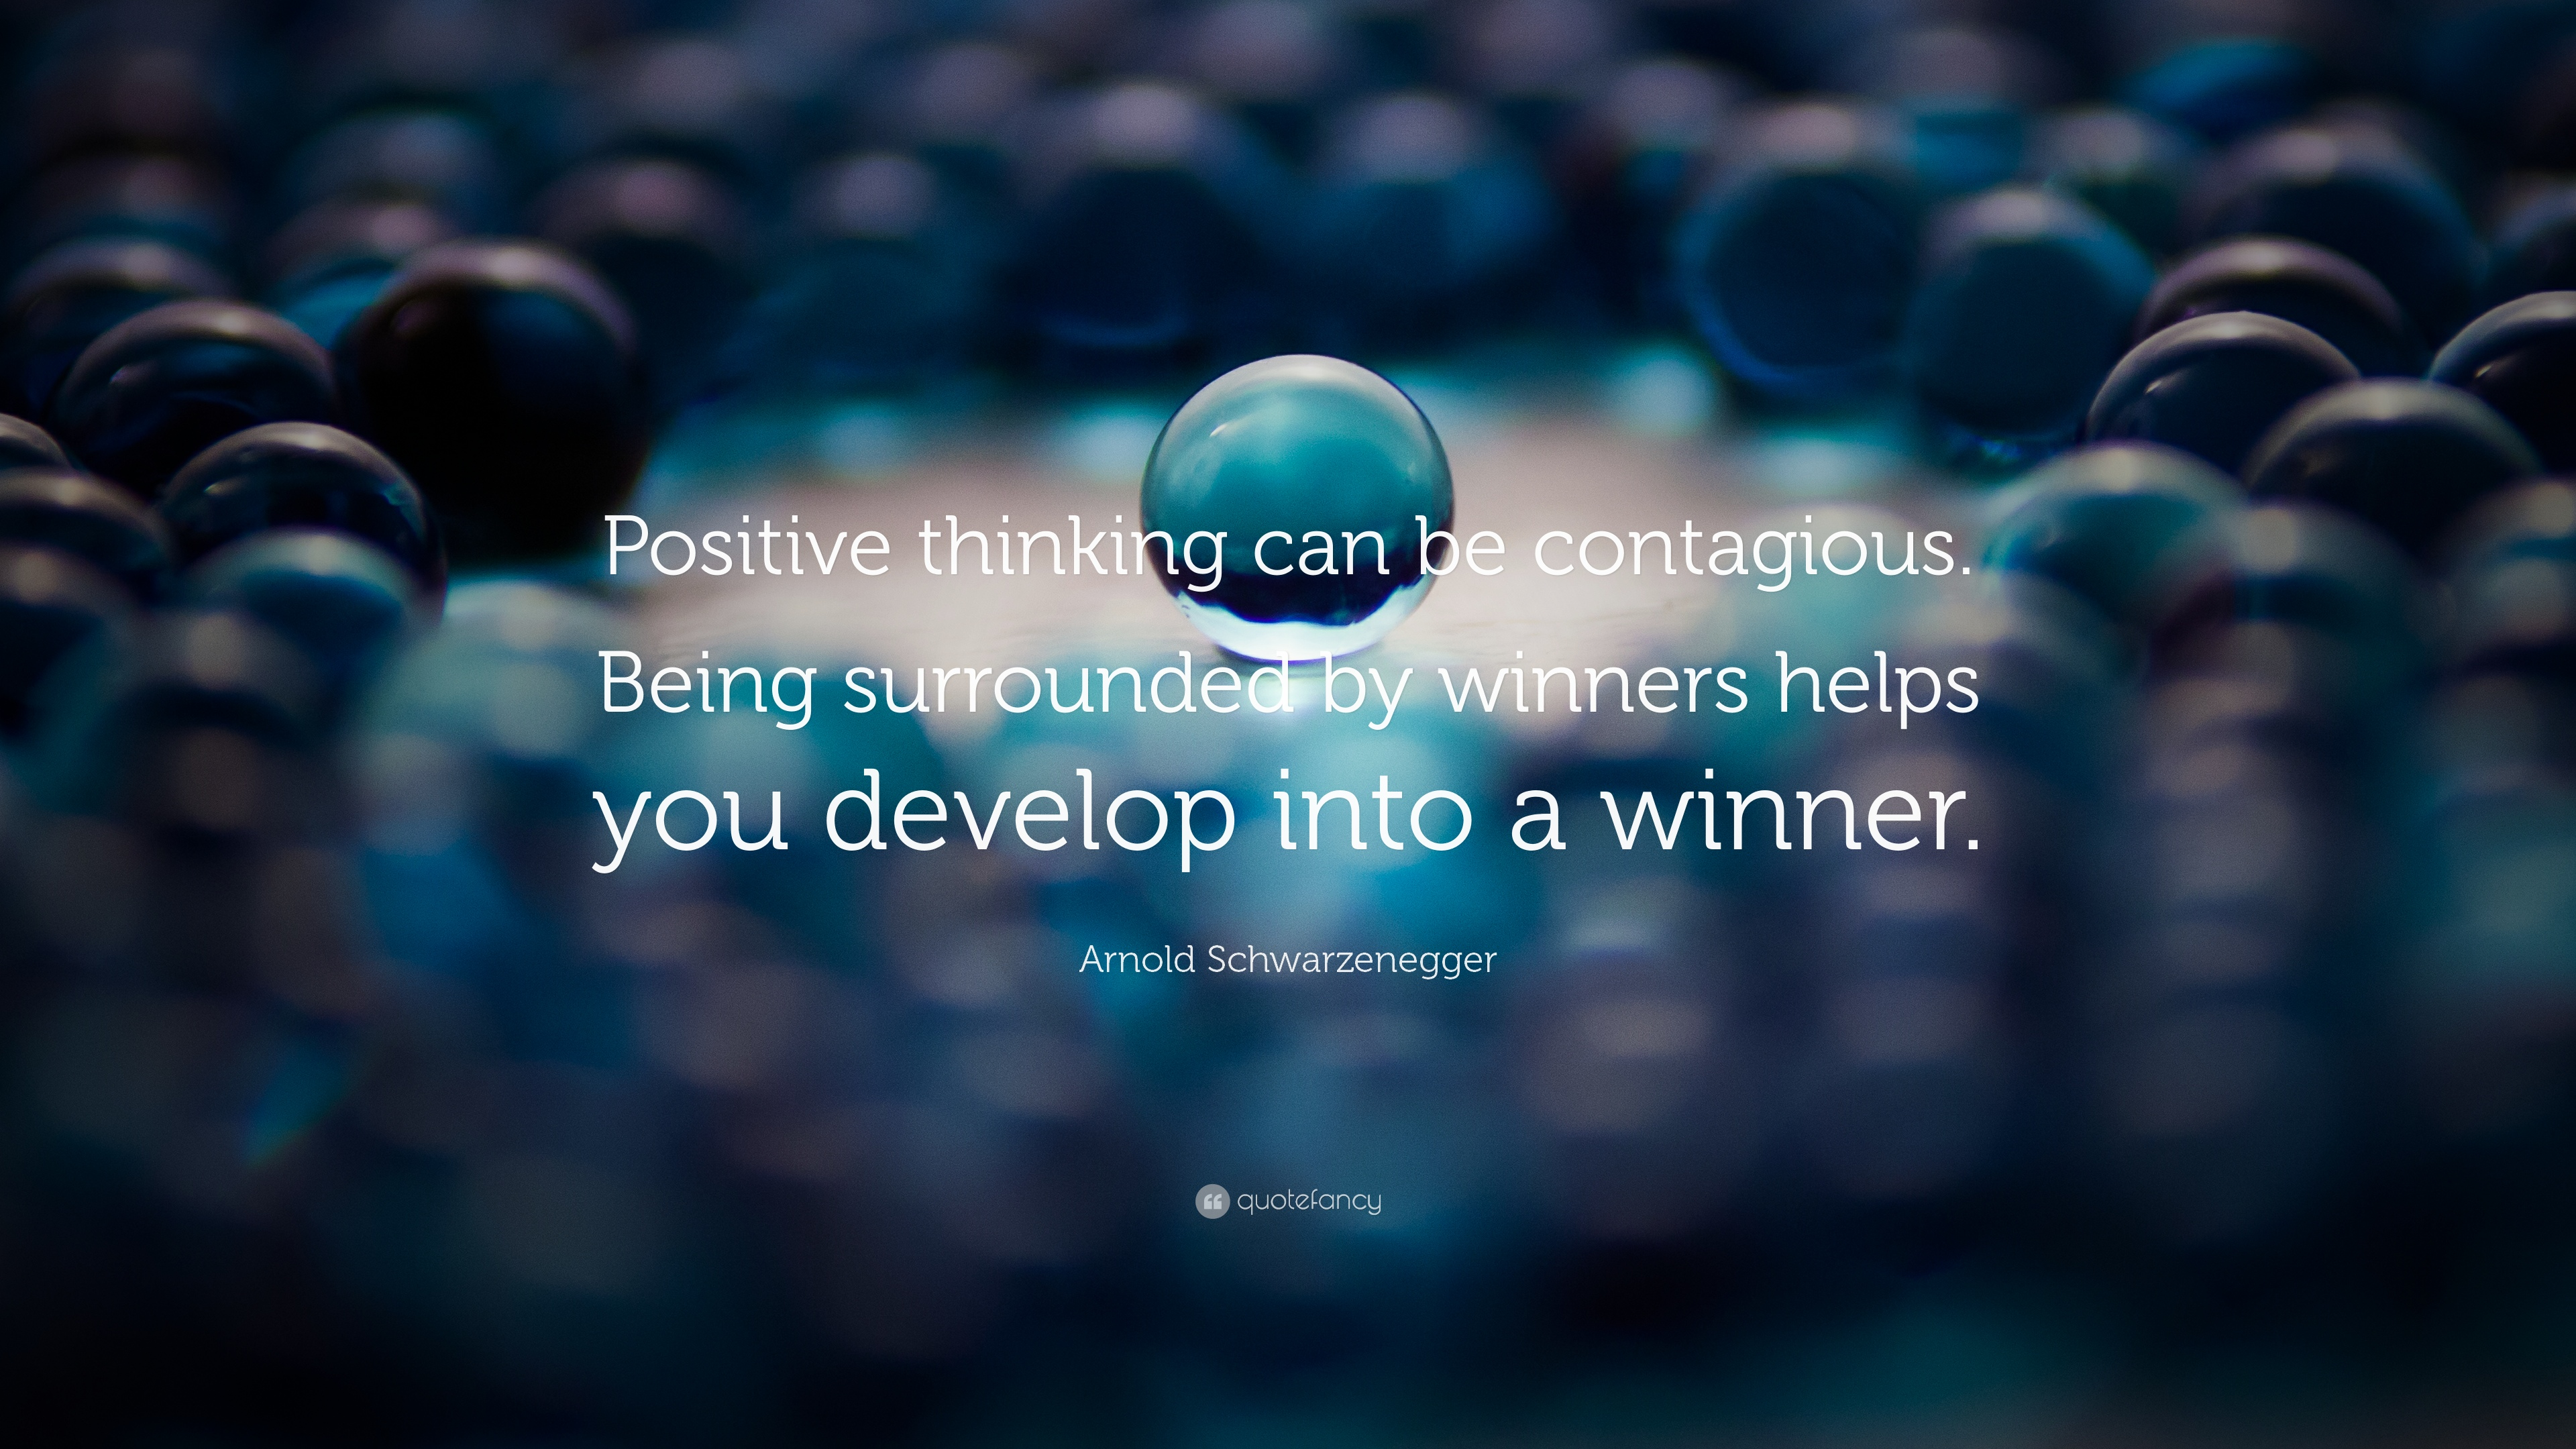 positive thinking essay writing positive thinking essay writing  positive quotes quotefancy positive quotes positive thinking can be contagious being surrounded by winners helps you